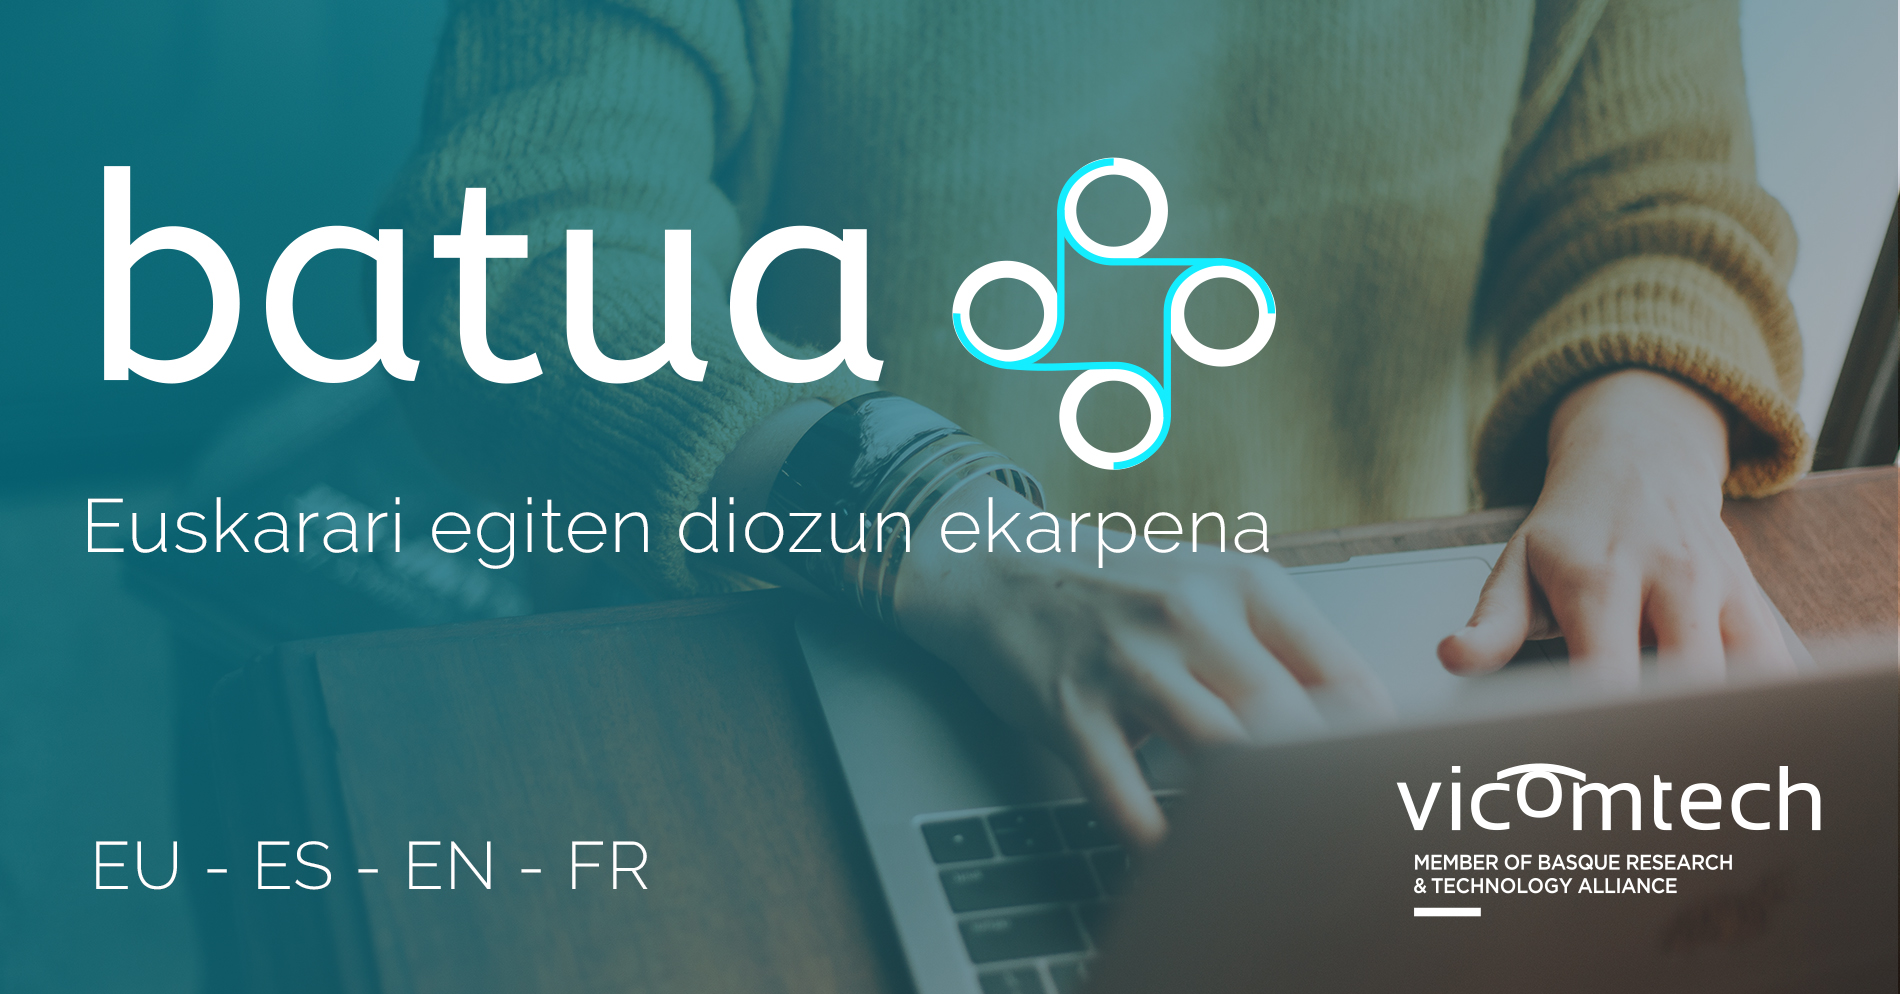 Batua.eus goes one step further and expands its translation services into English and French